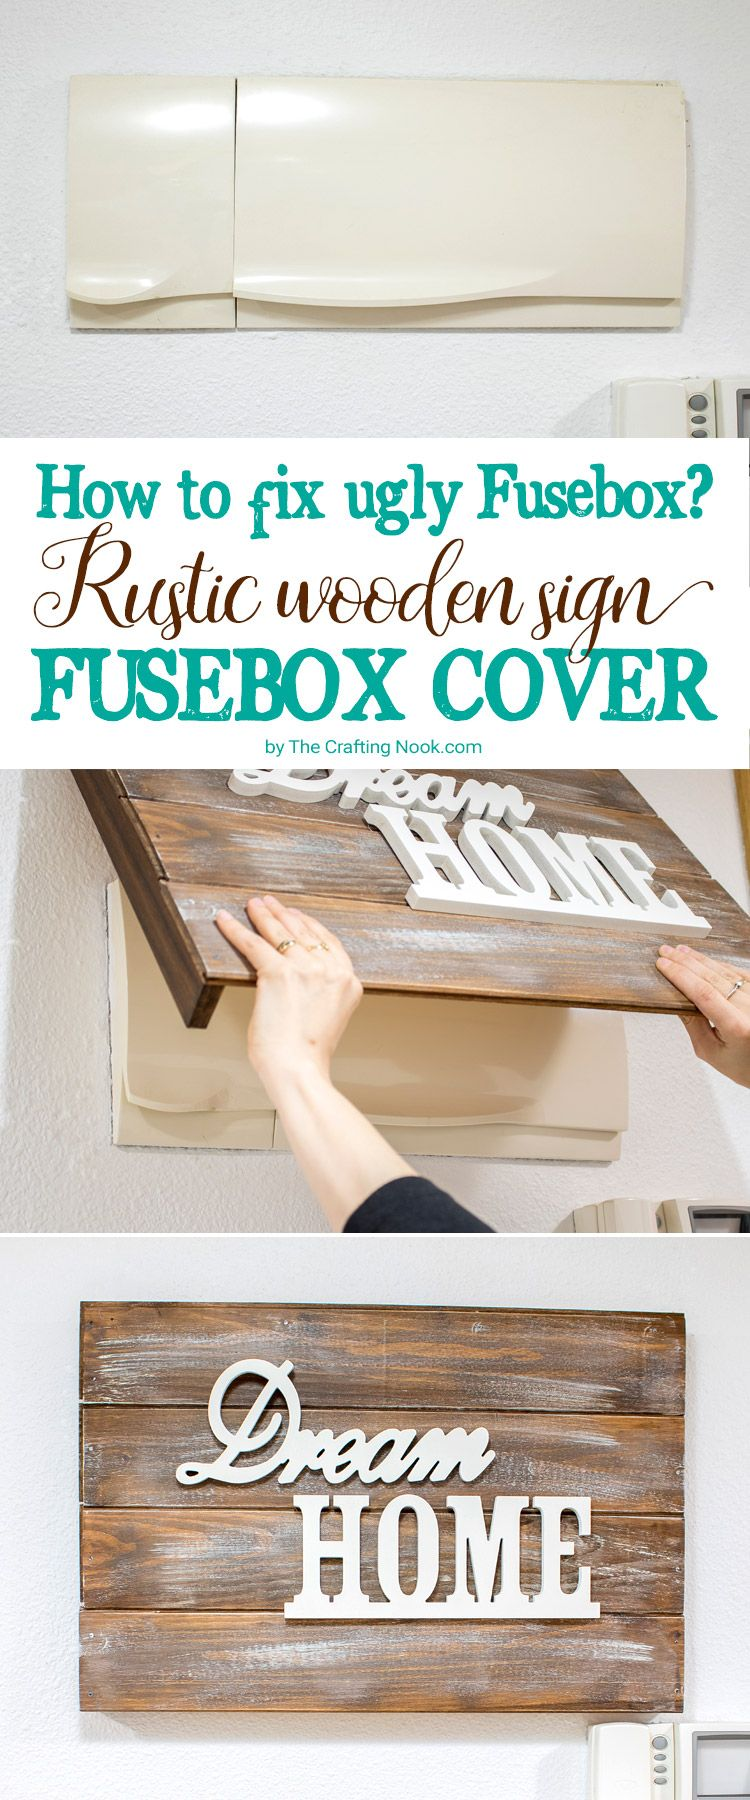 small resolution of this rustic wooden sign fusebox cover is pretty is easy to make and will fix the visible breaker box problem forever